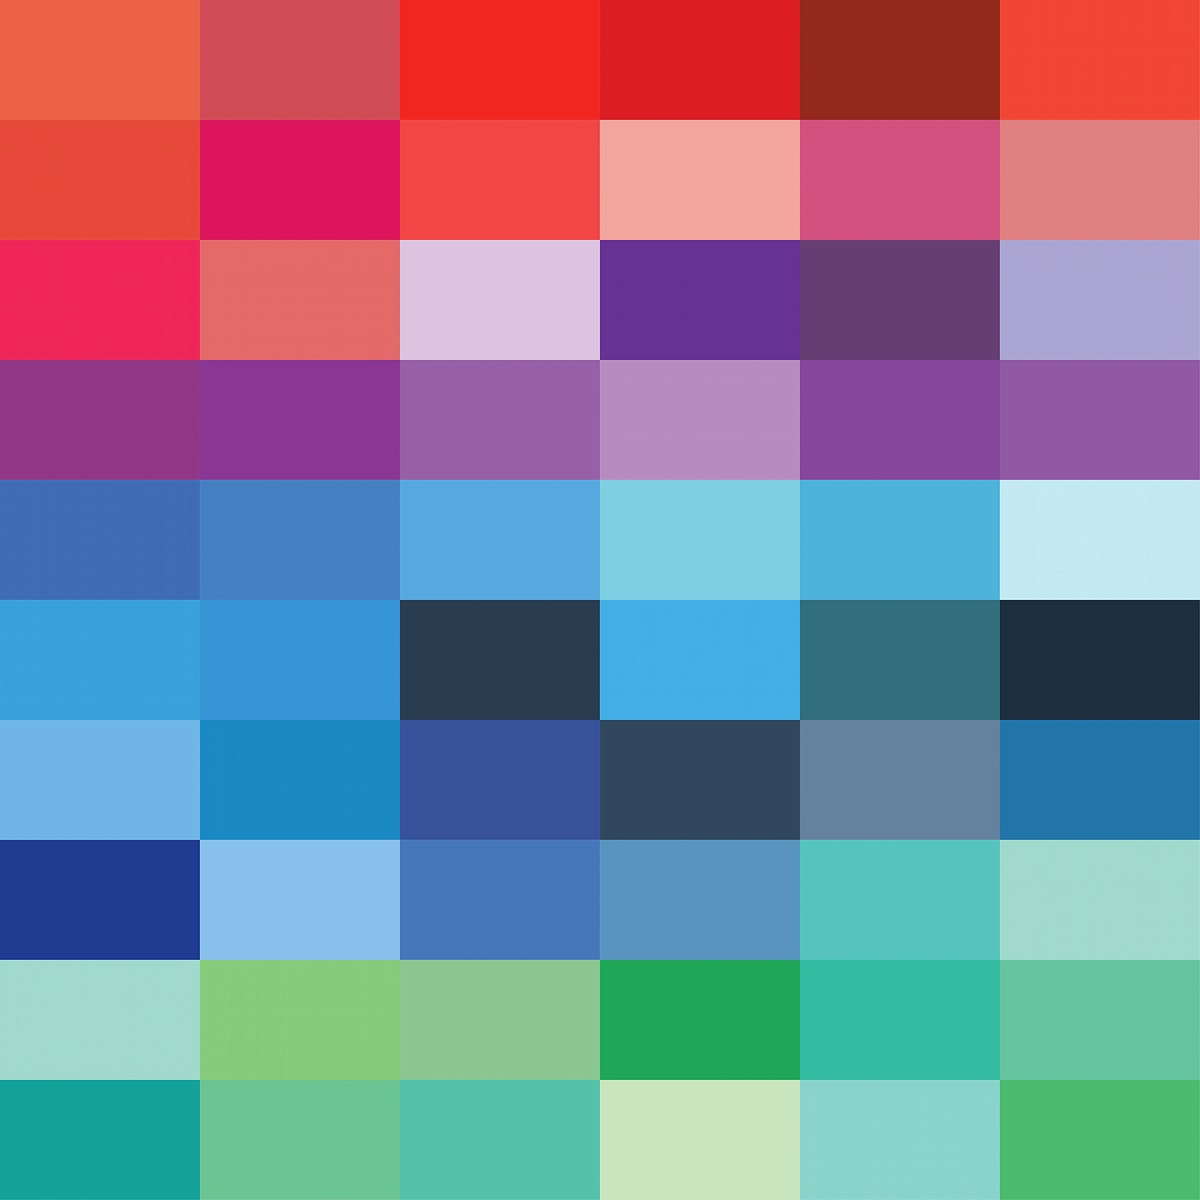 Colorful abstract textured design graphic illustration